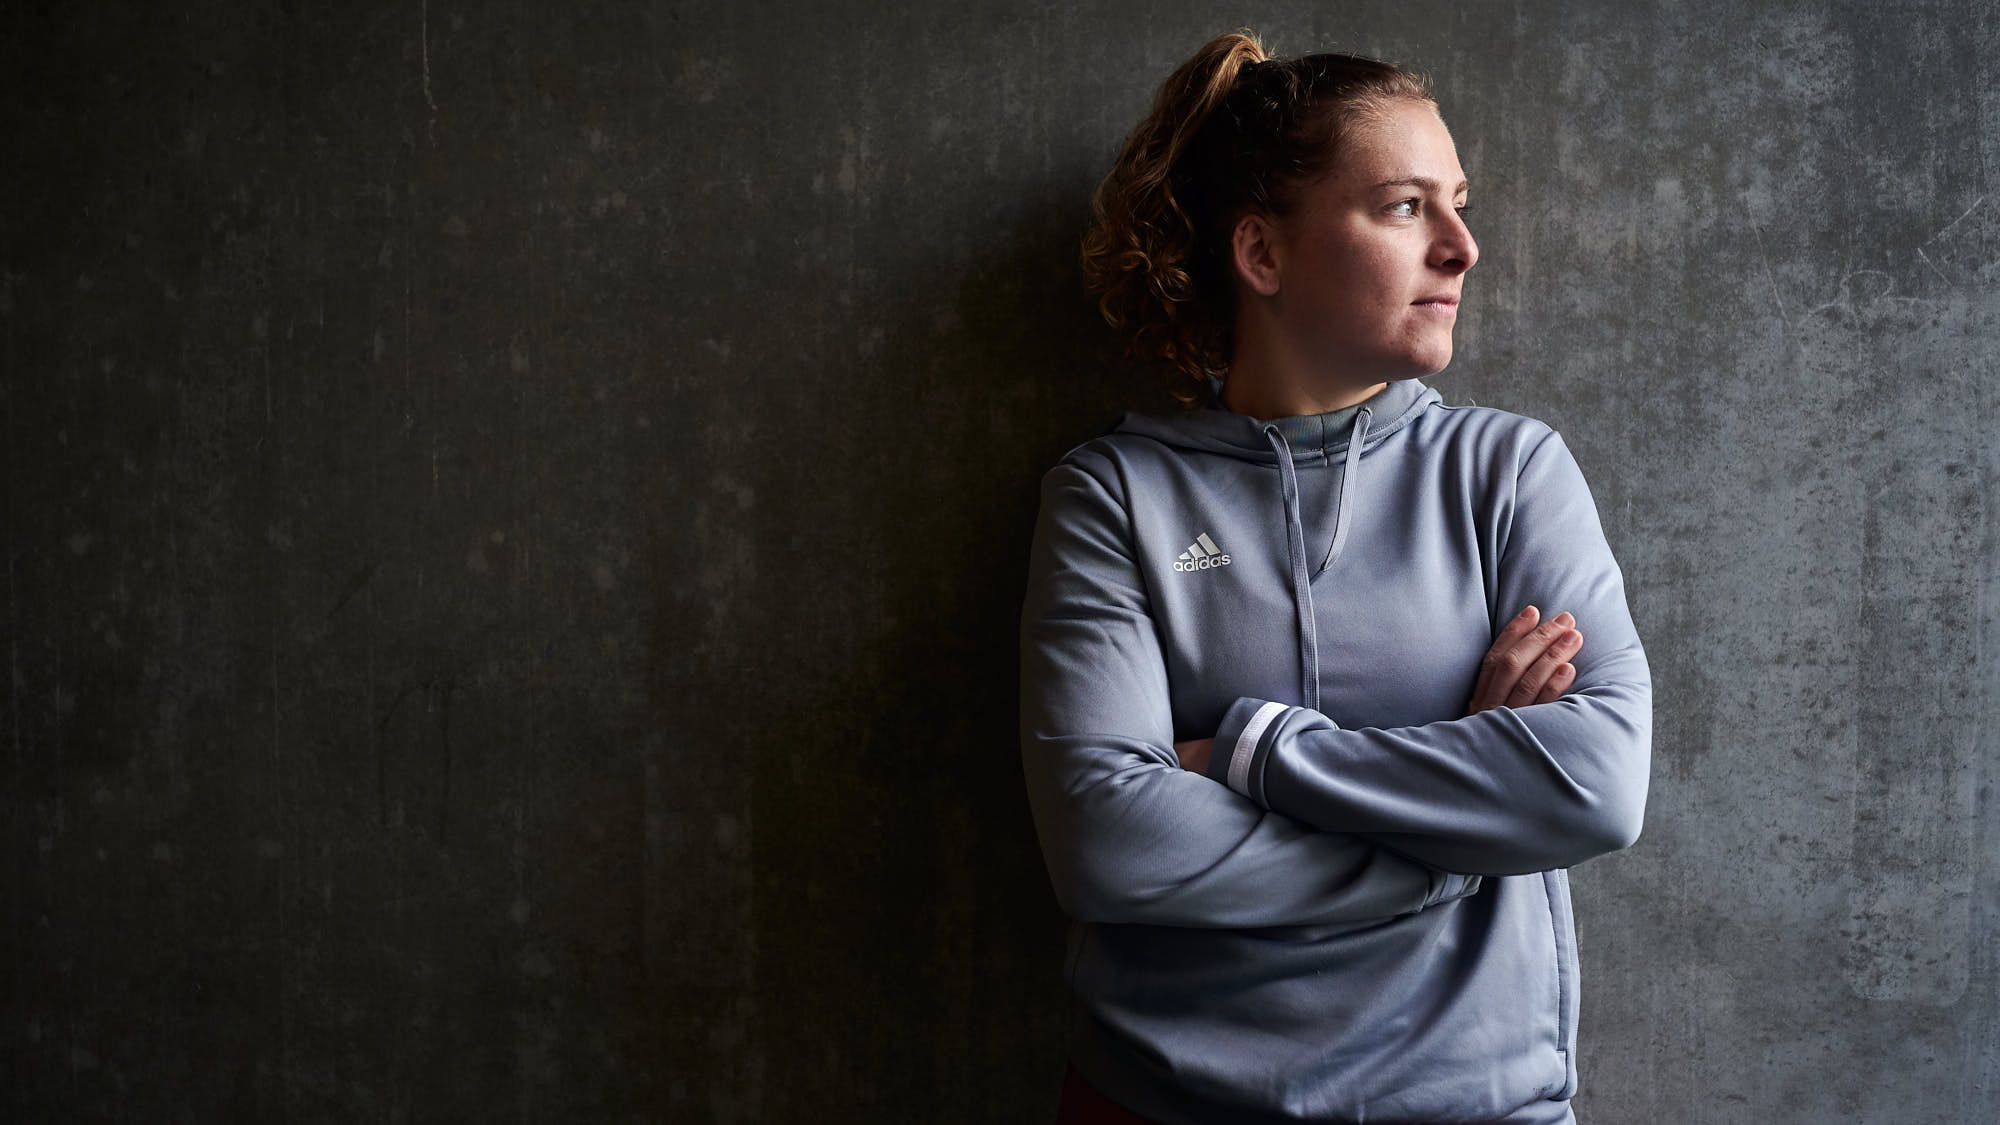 Moody portrait of Dutch hockey player Hester van der Veld